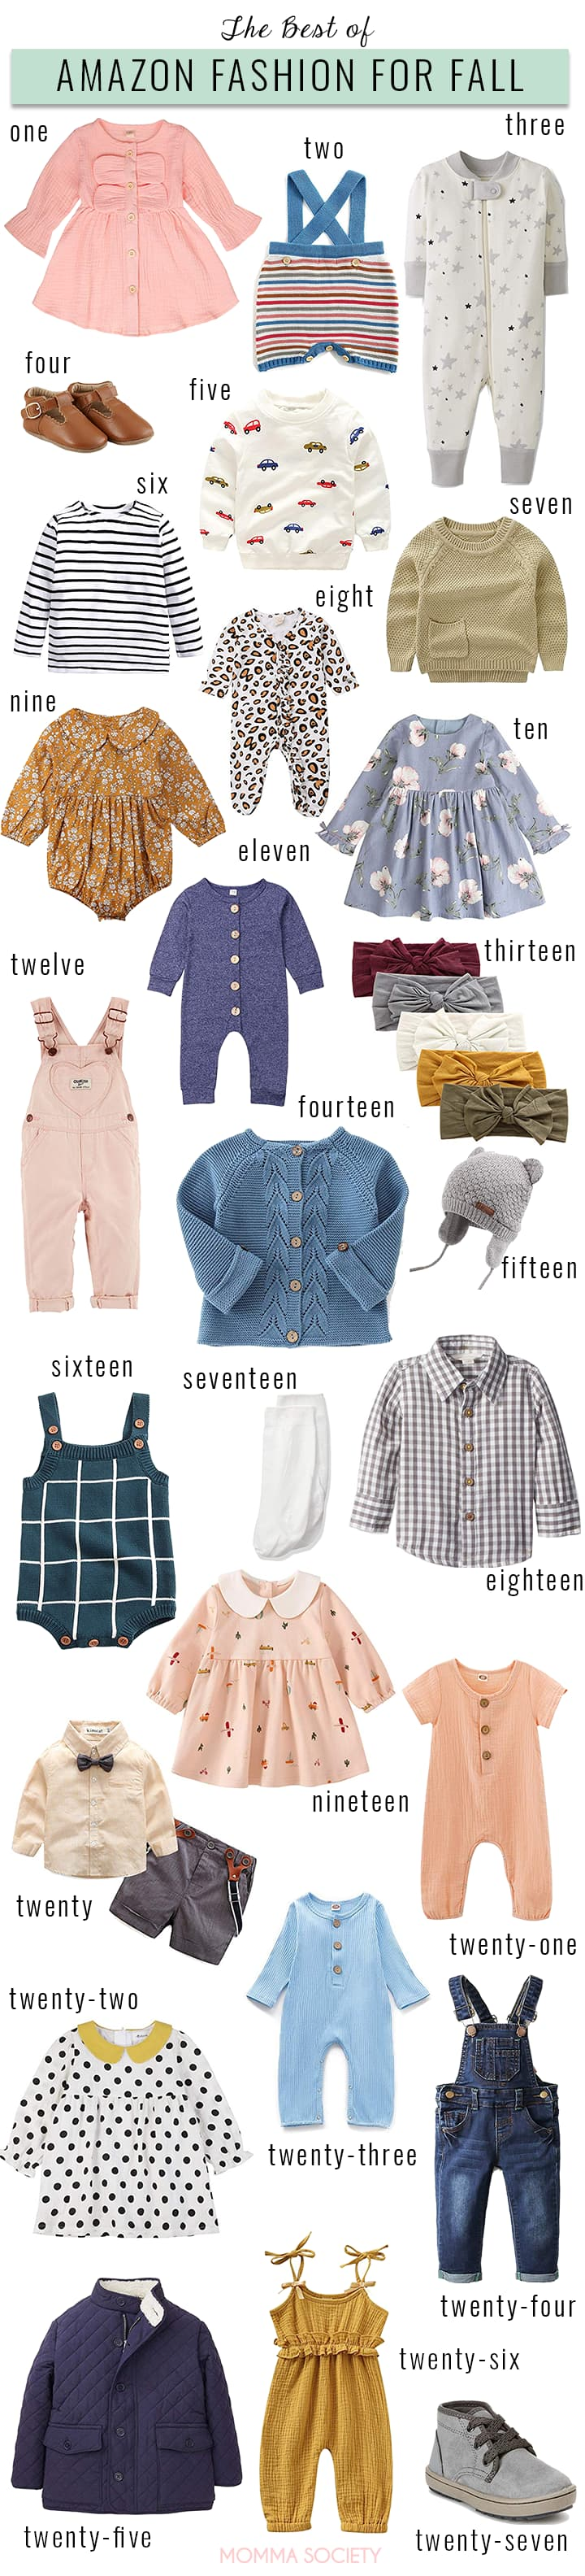 The Best of Amazon Fall Fashion for Babies + Toddlers   Momma Society